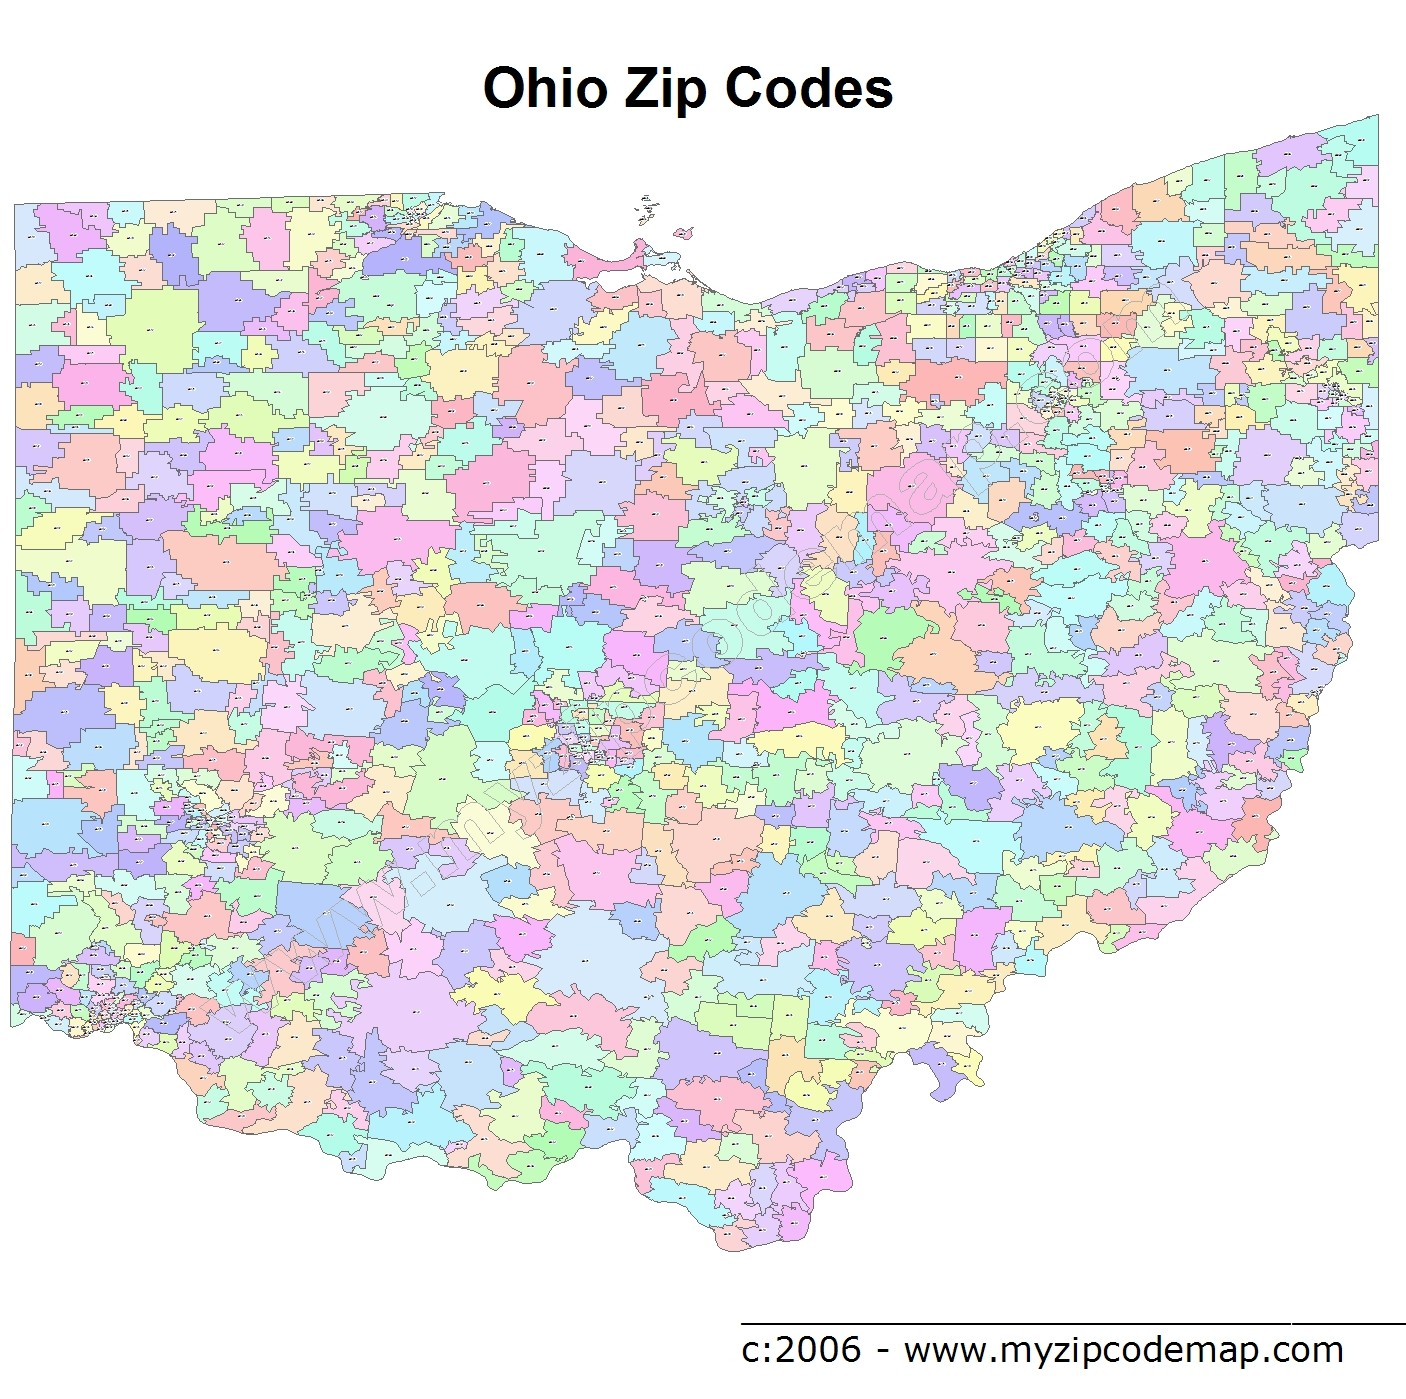 Ohio Zip Code Maps - Free Ohio Zip Code Maps